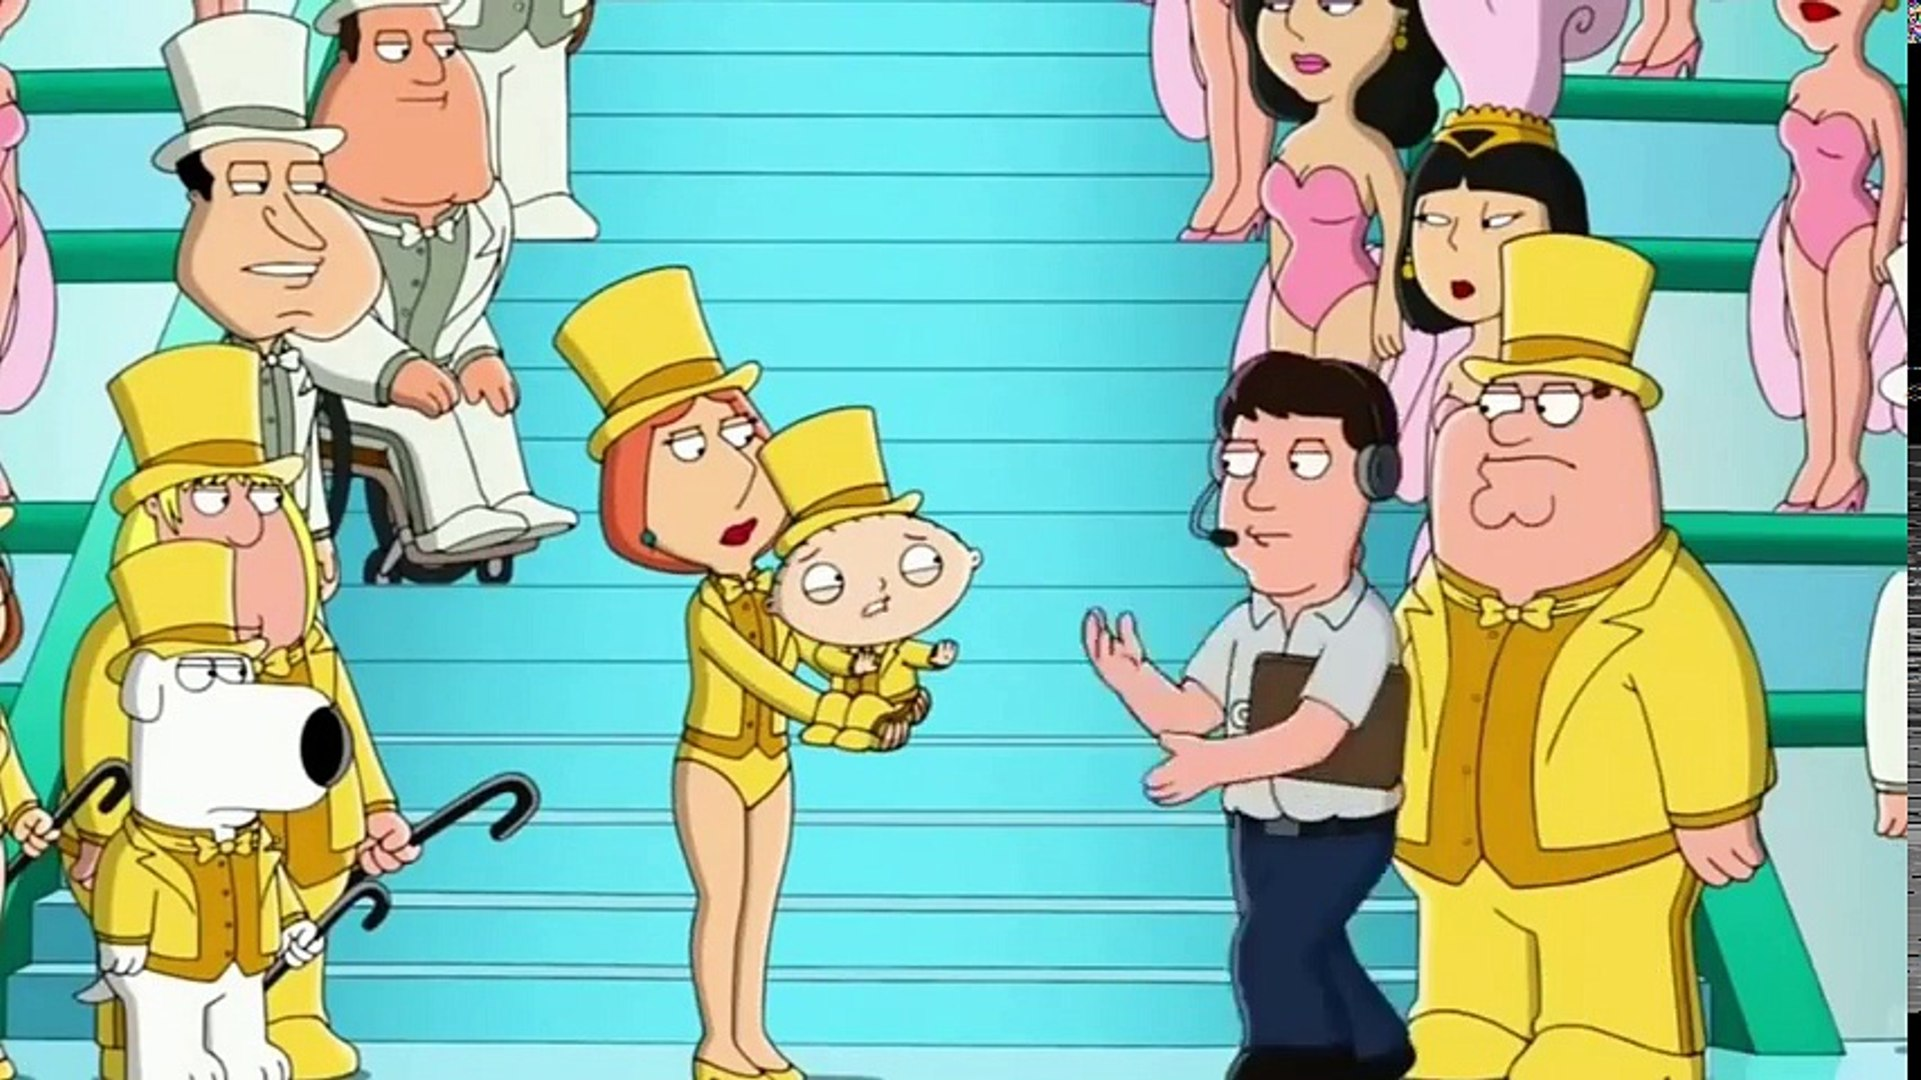 Family Guy season 14 episode 15 A Lot Going on Upstairs